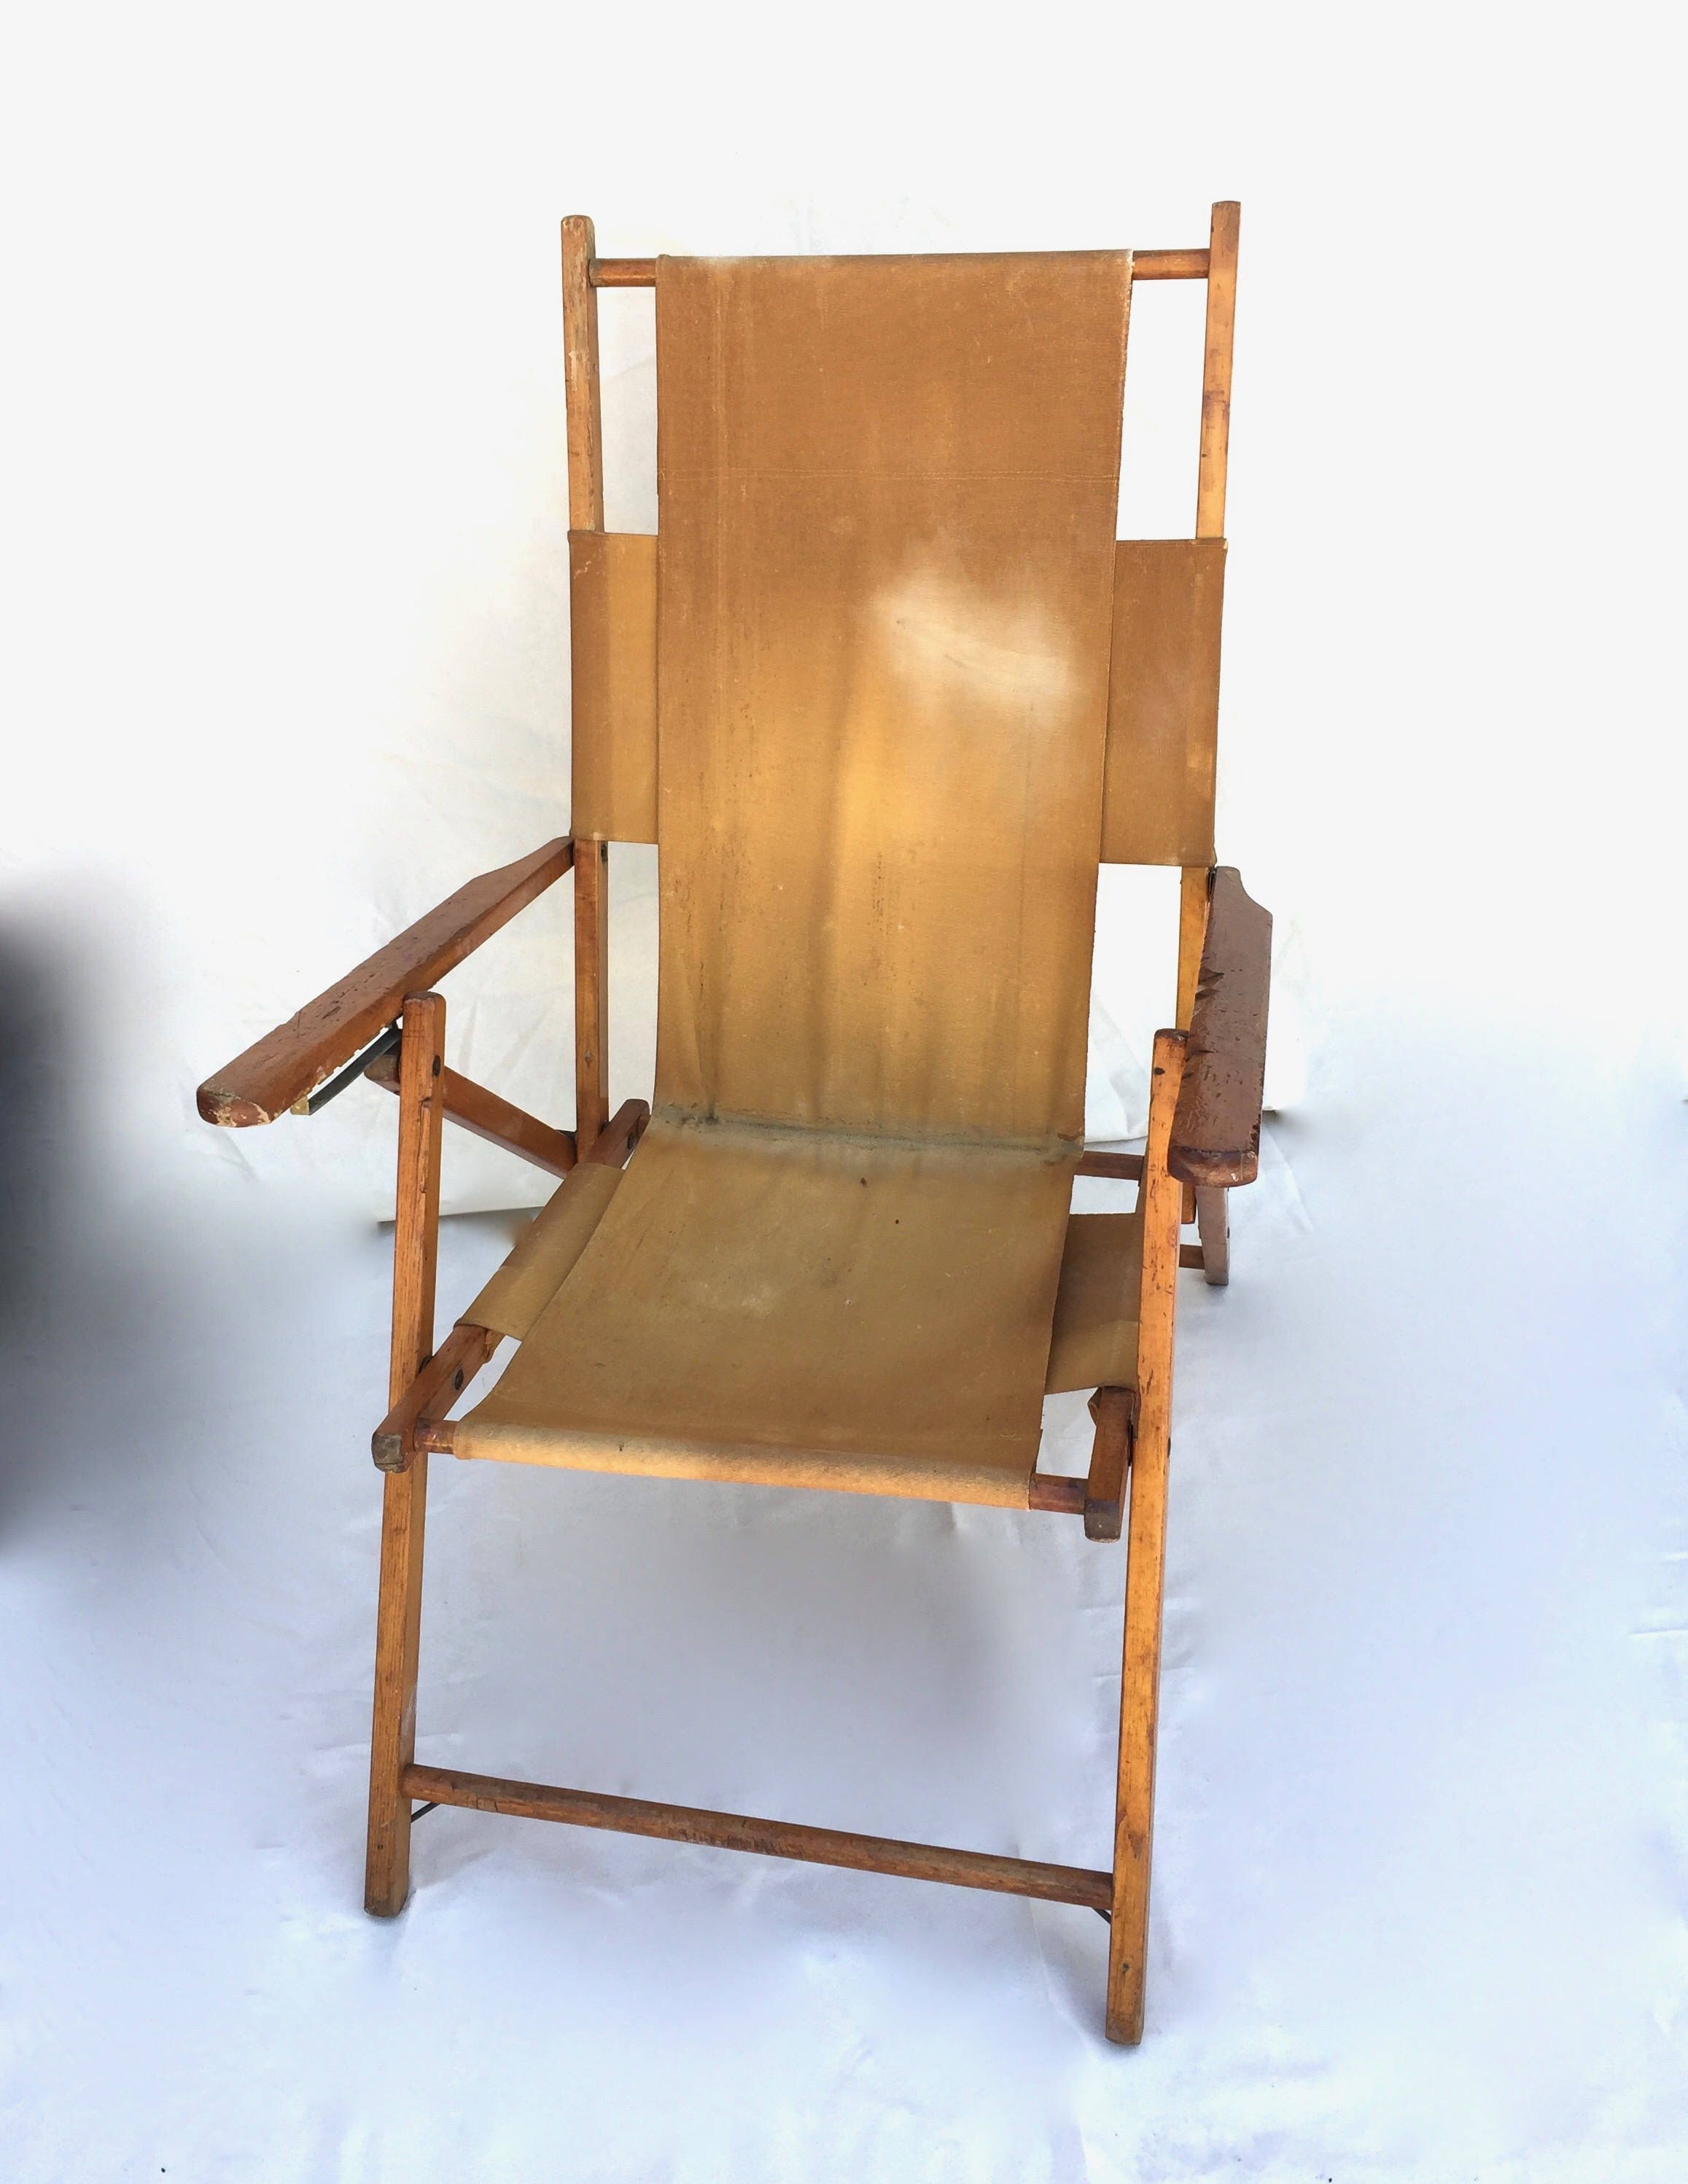 Vintage beach chair folding camp chair cus by gentryantiques on